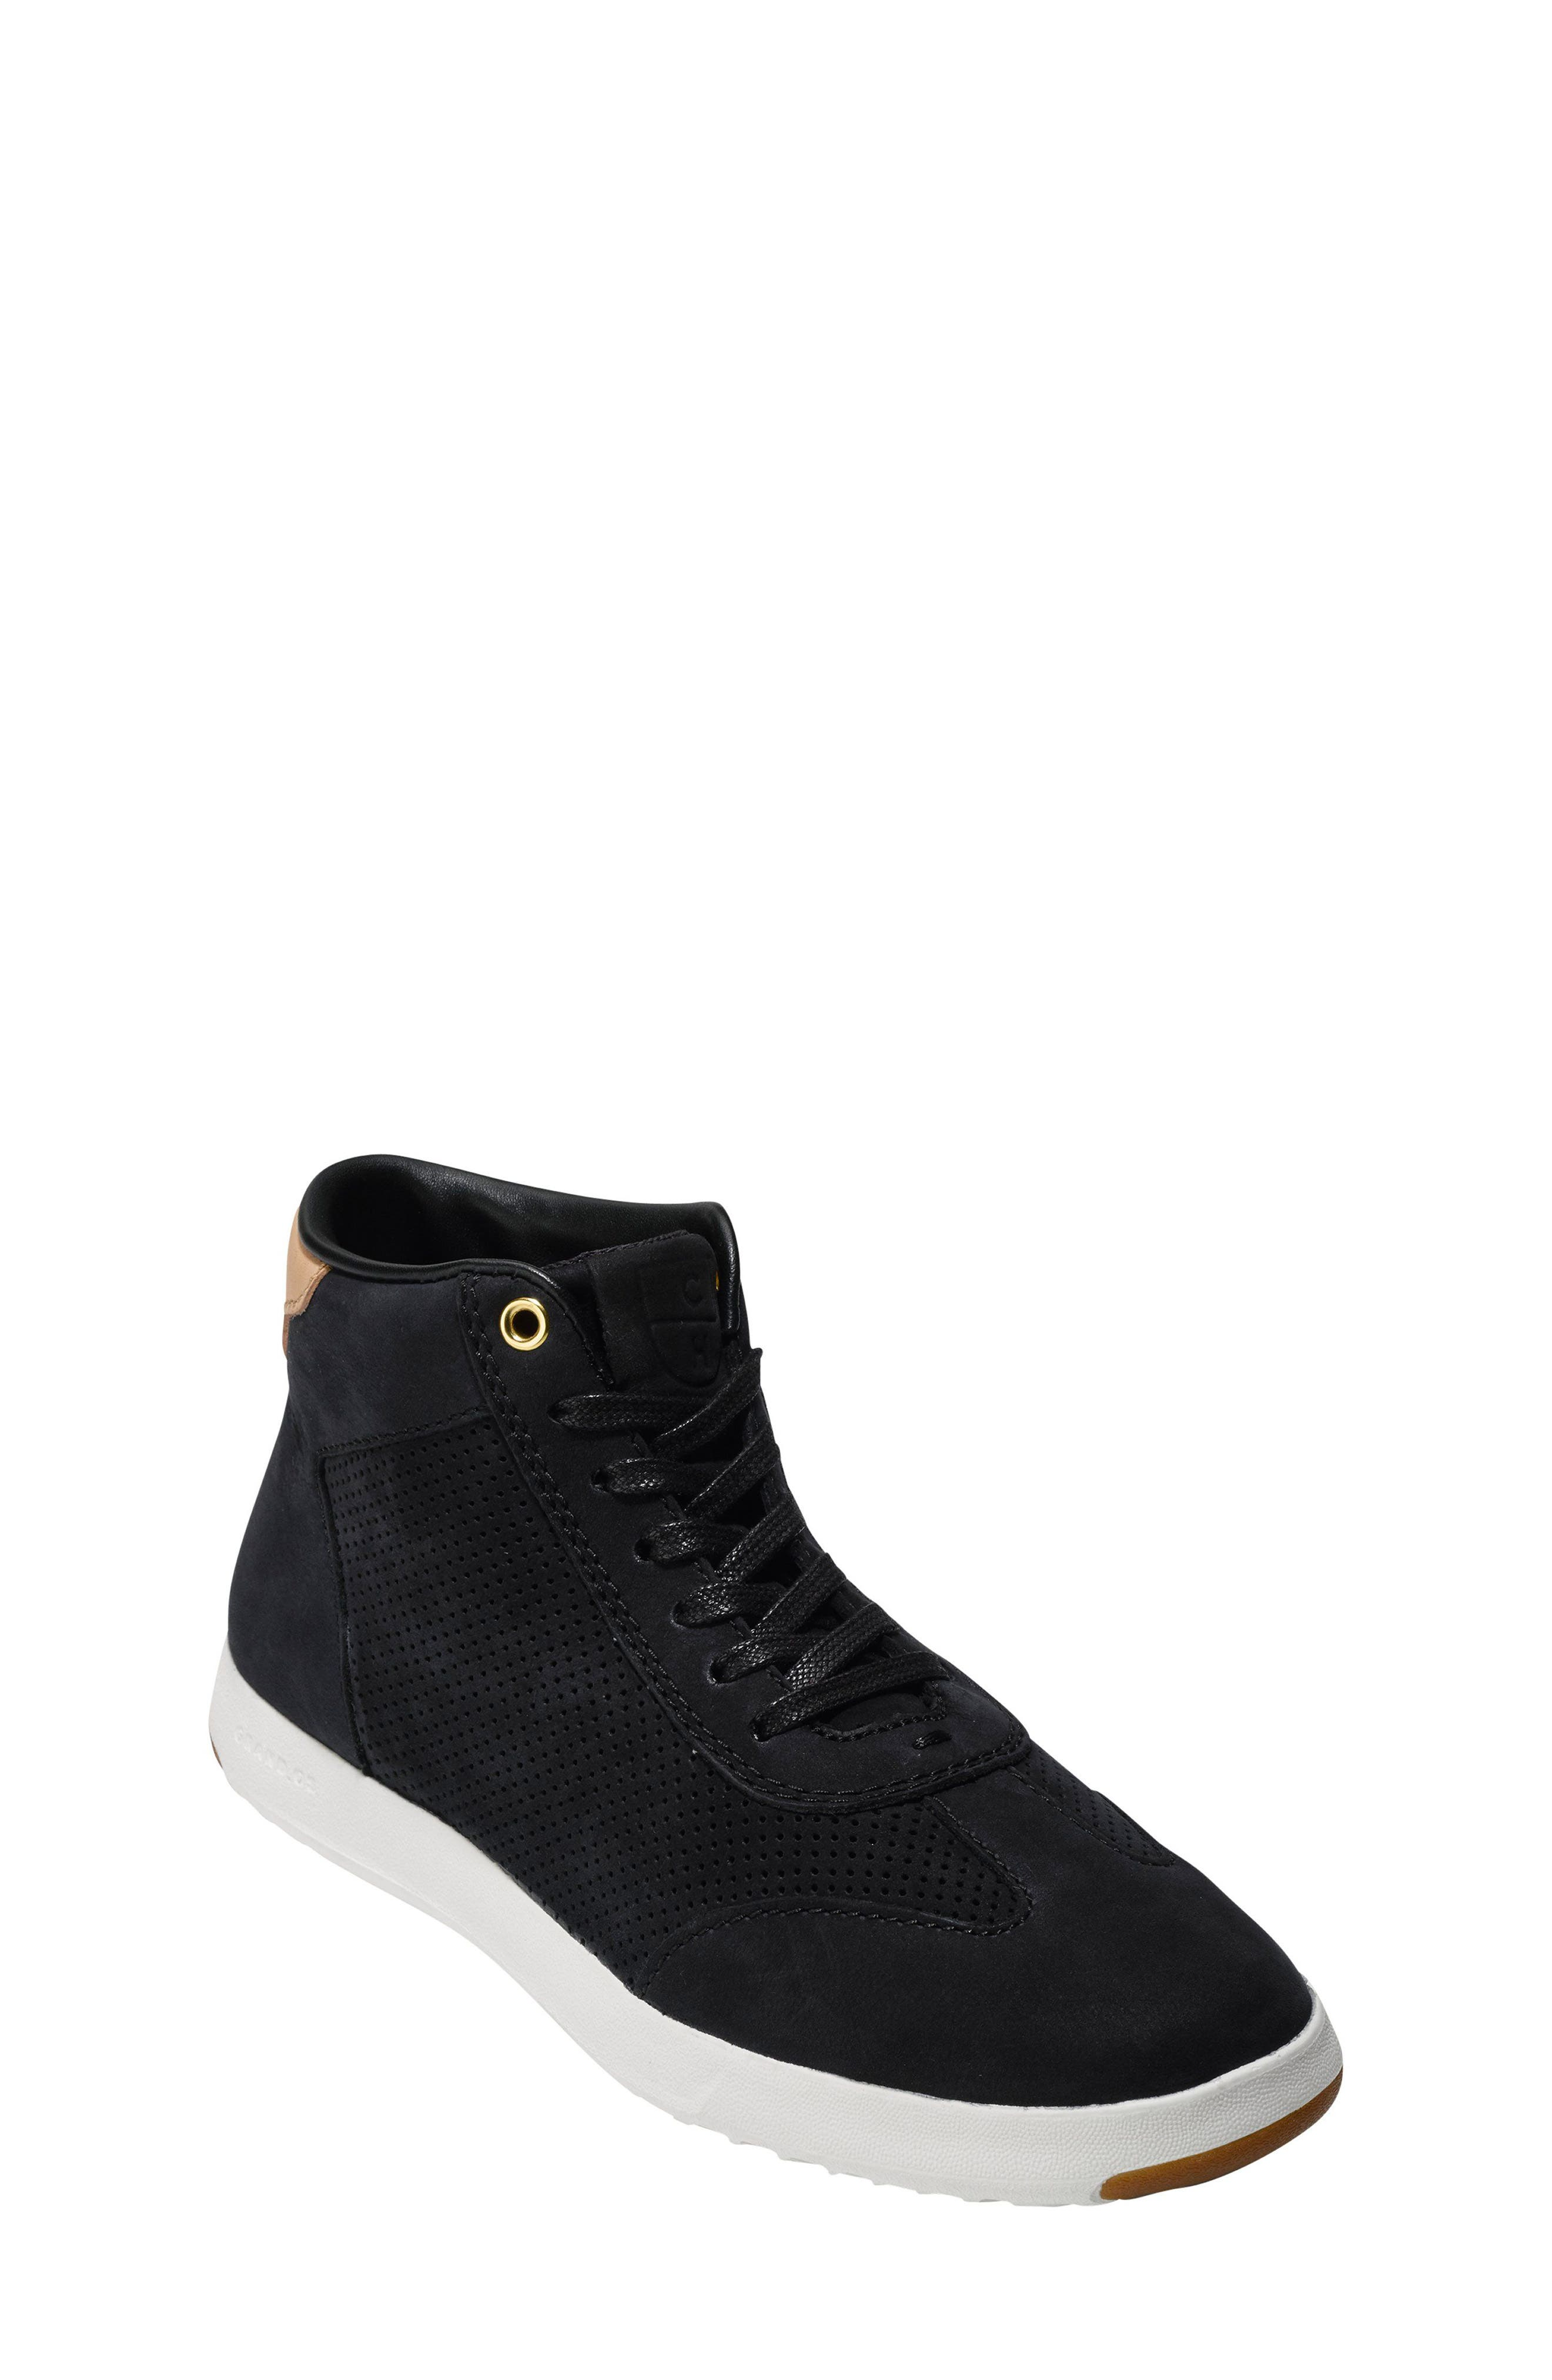 GrandPro High Top Sneaker,                         Main,                         color, Black Nubuck Leather